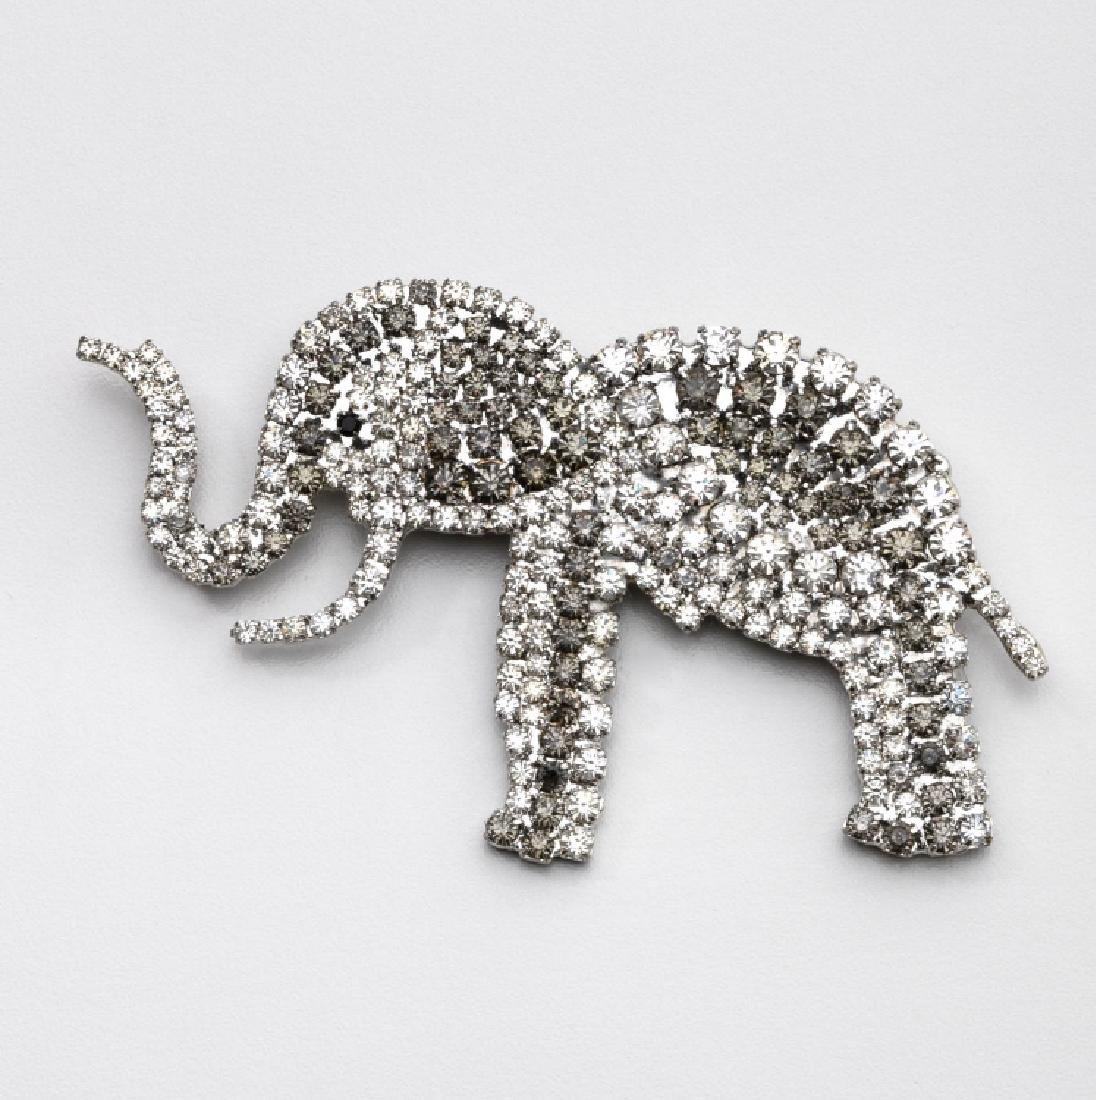 SPARKLING ELEPHANT PROFILE BROOCH, ATTRIBUTED TO BUTLER